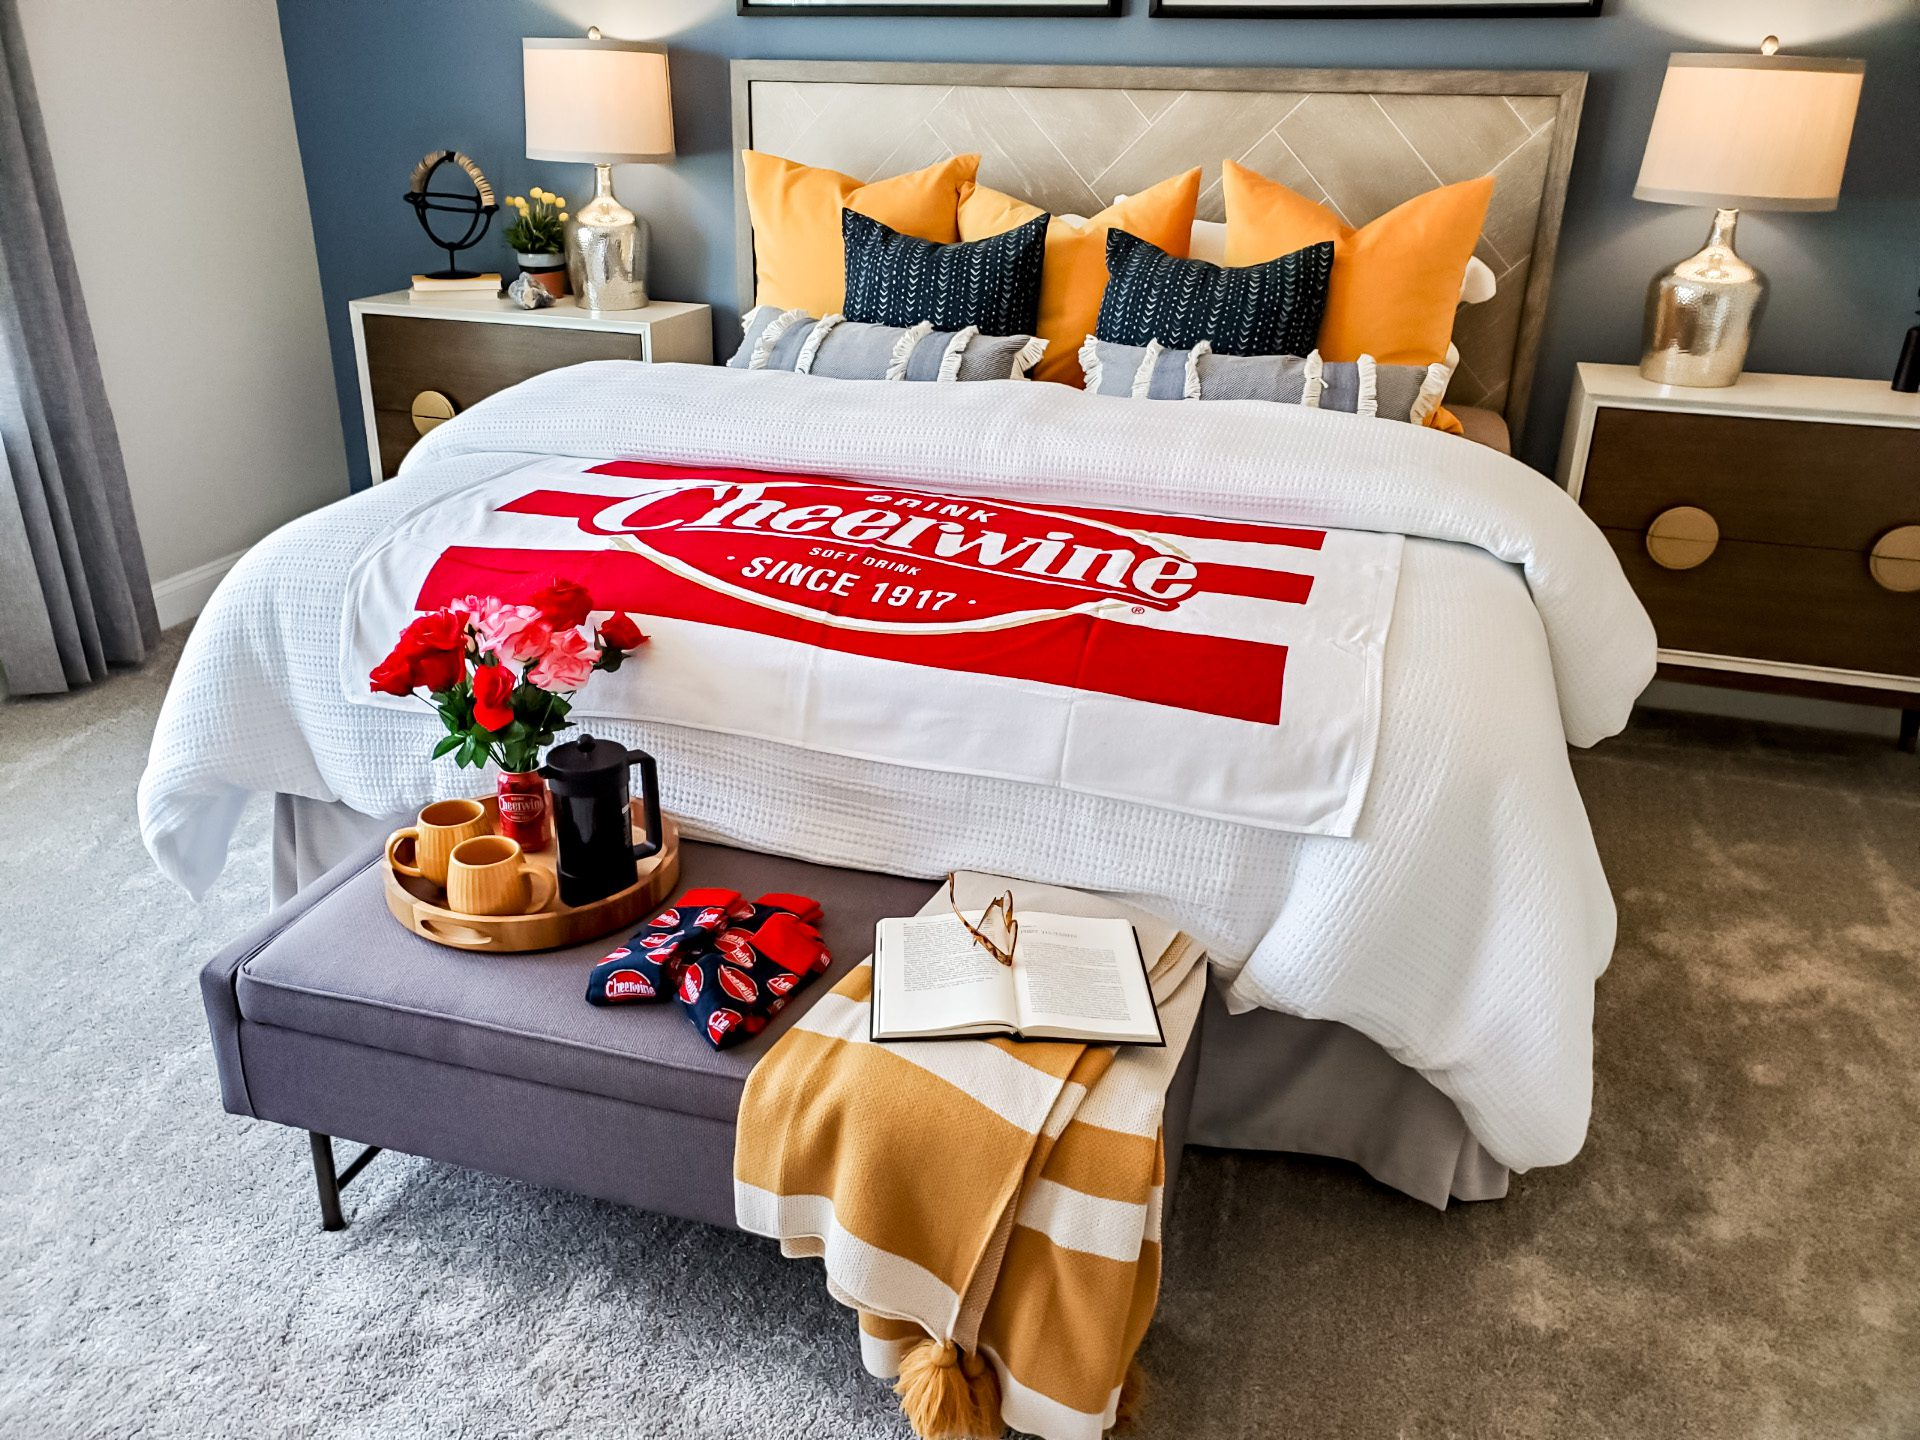 The W Group's New Homes Weekend with Cheerwine